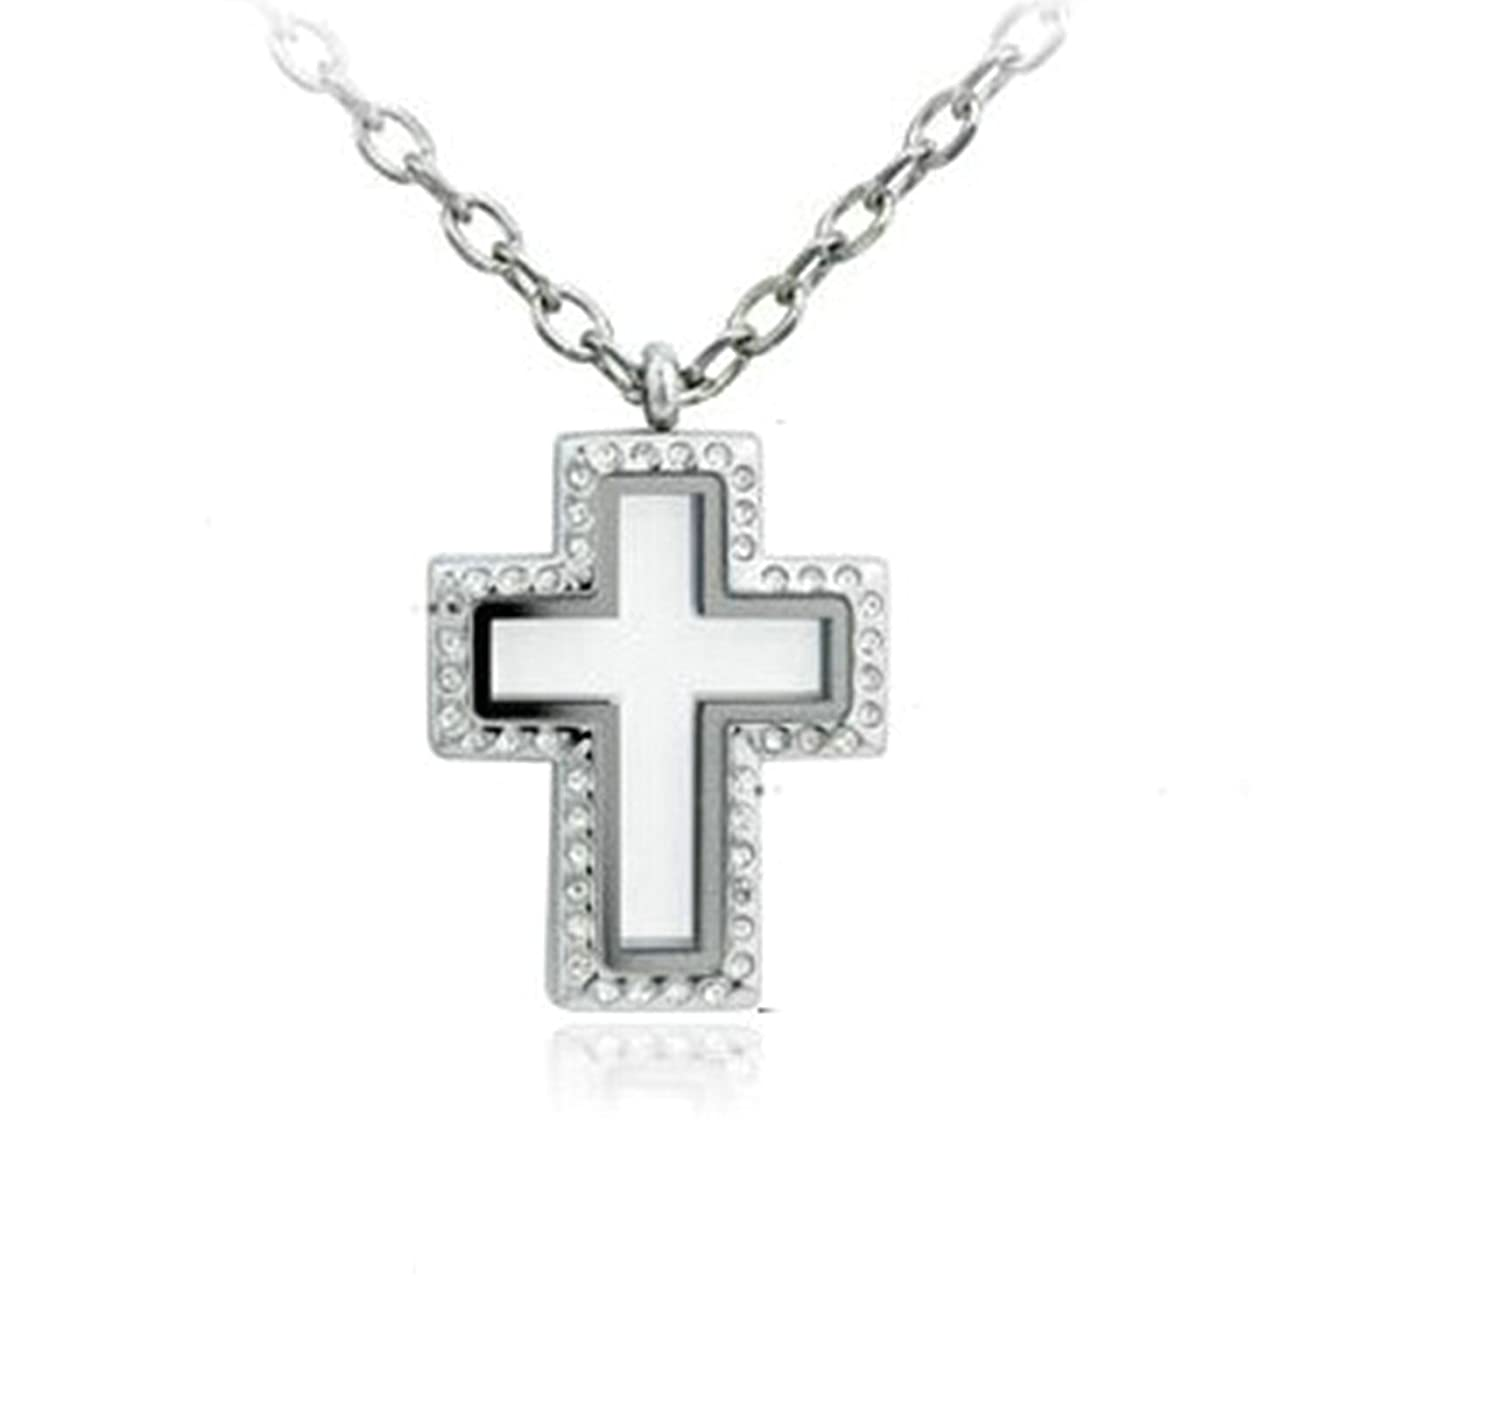 AMDXD Jewelry Stainless Steel Pendant Necklaces for Women Double Cross Cubic Zirconia Movable White